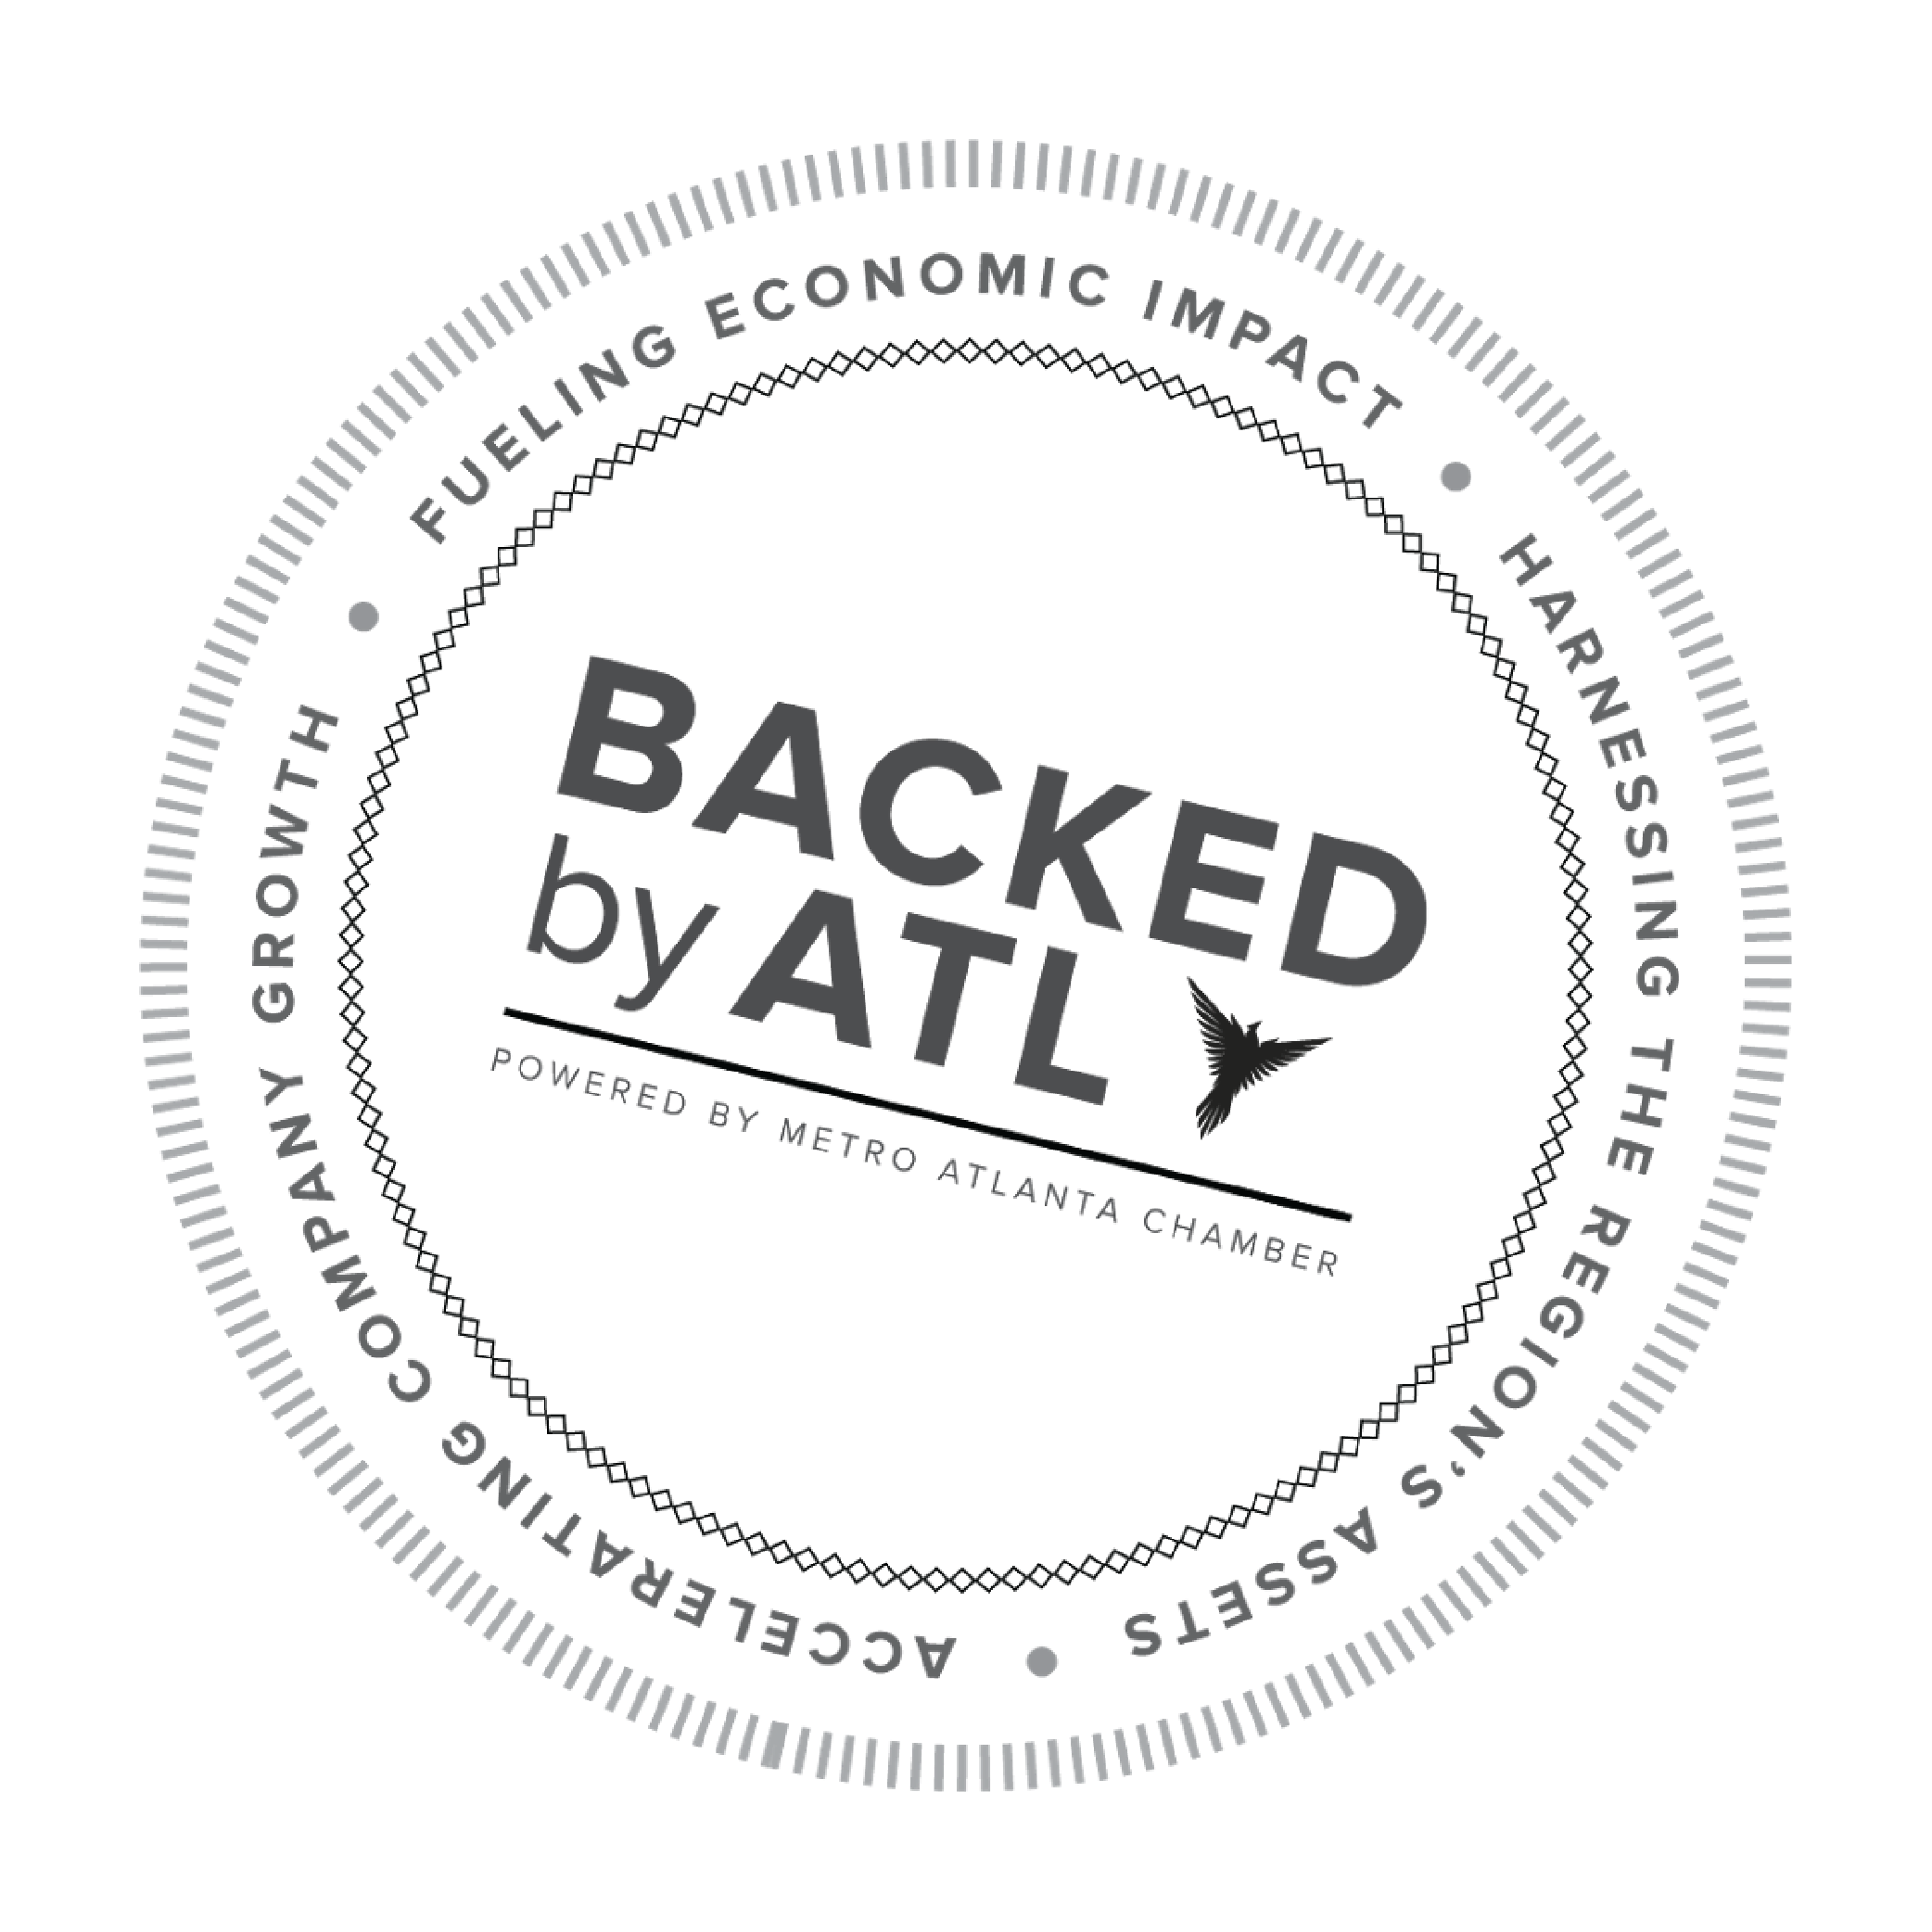 Backed by ATL